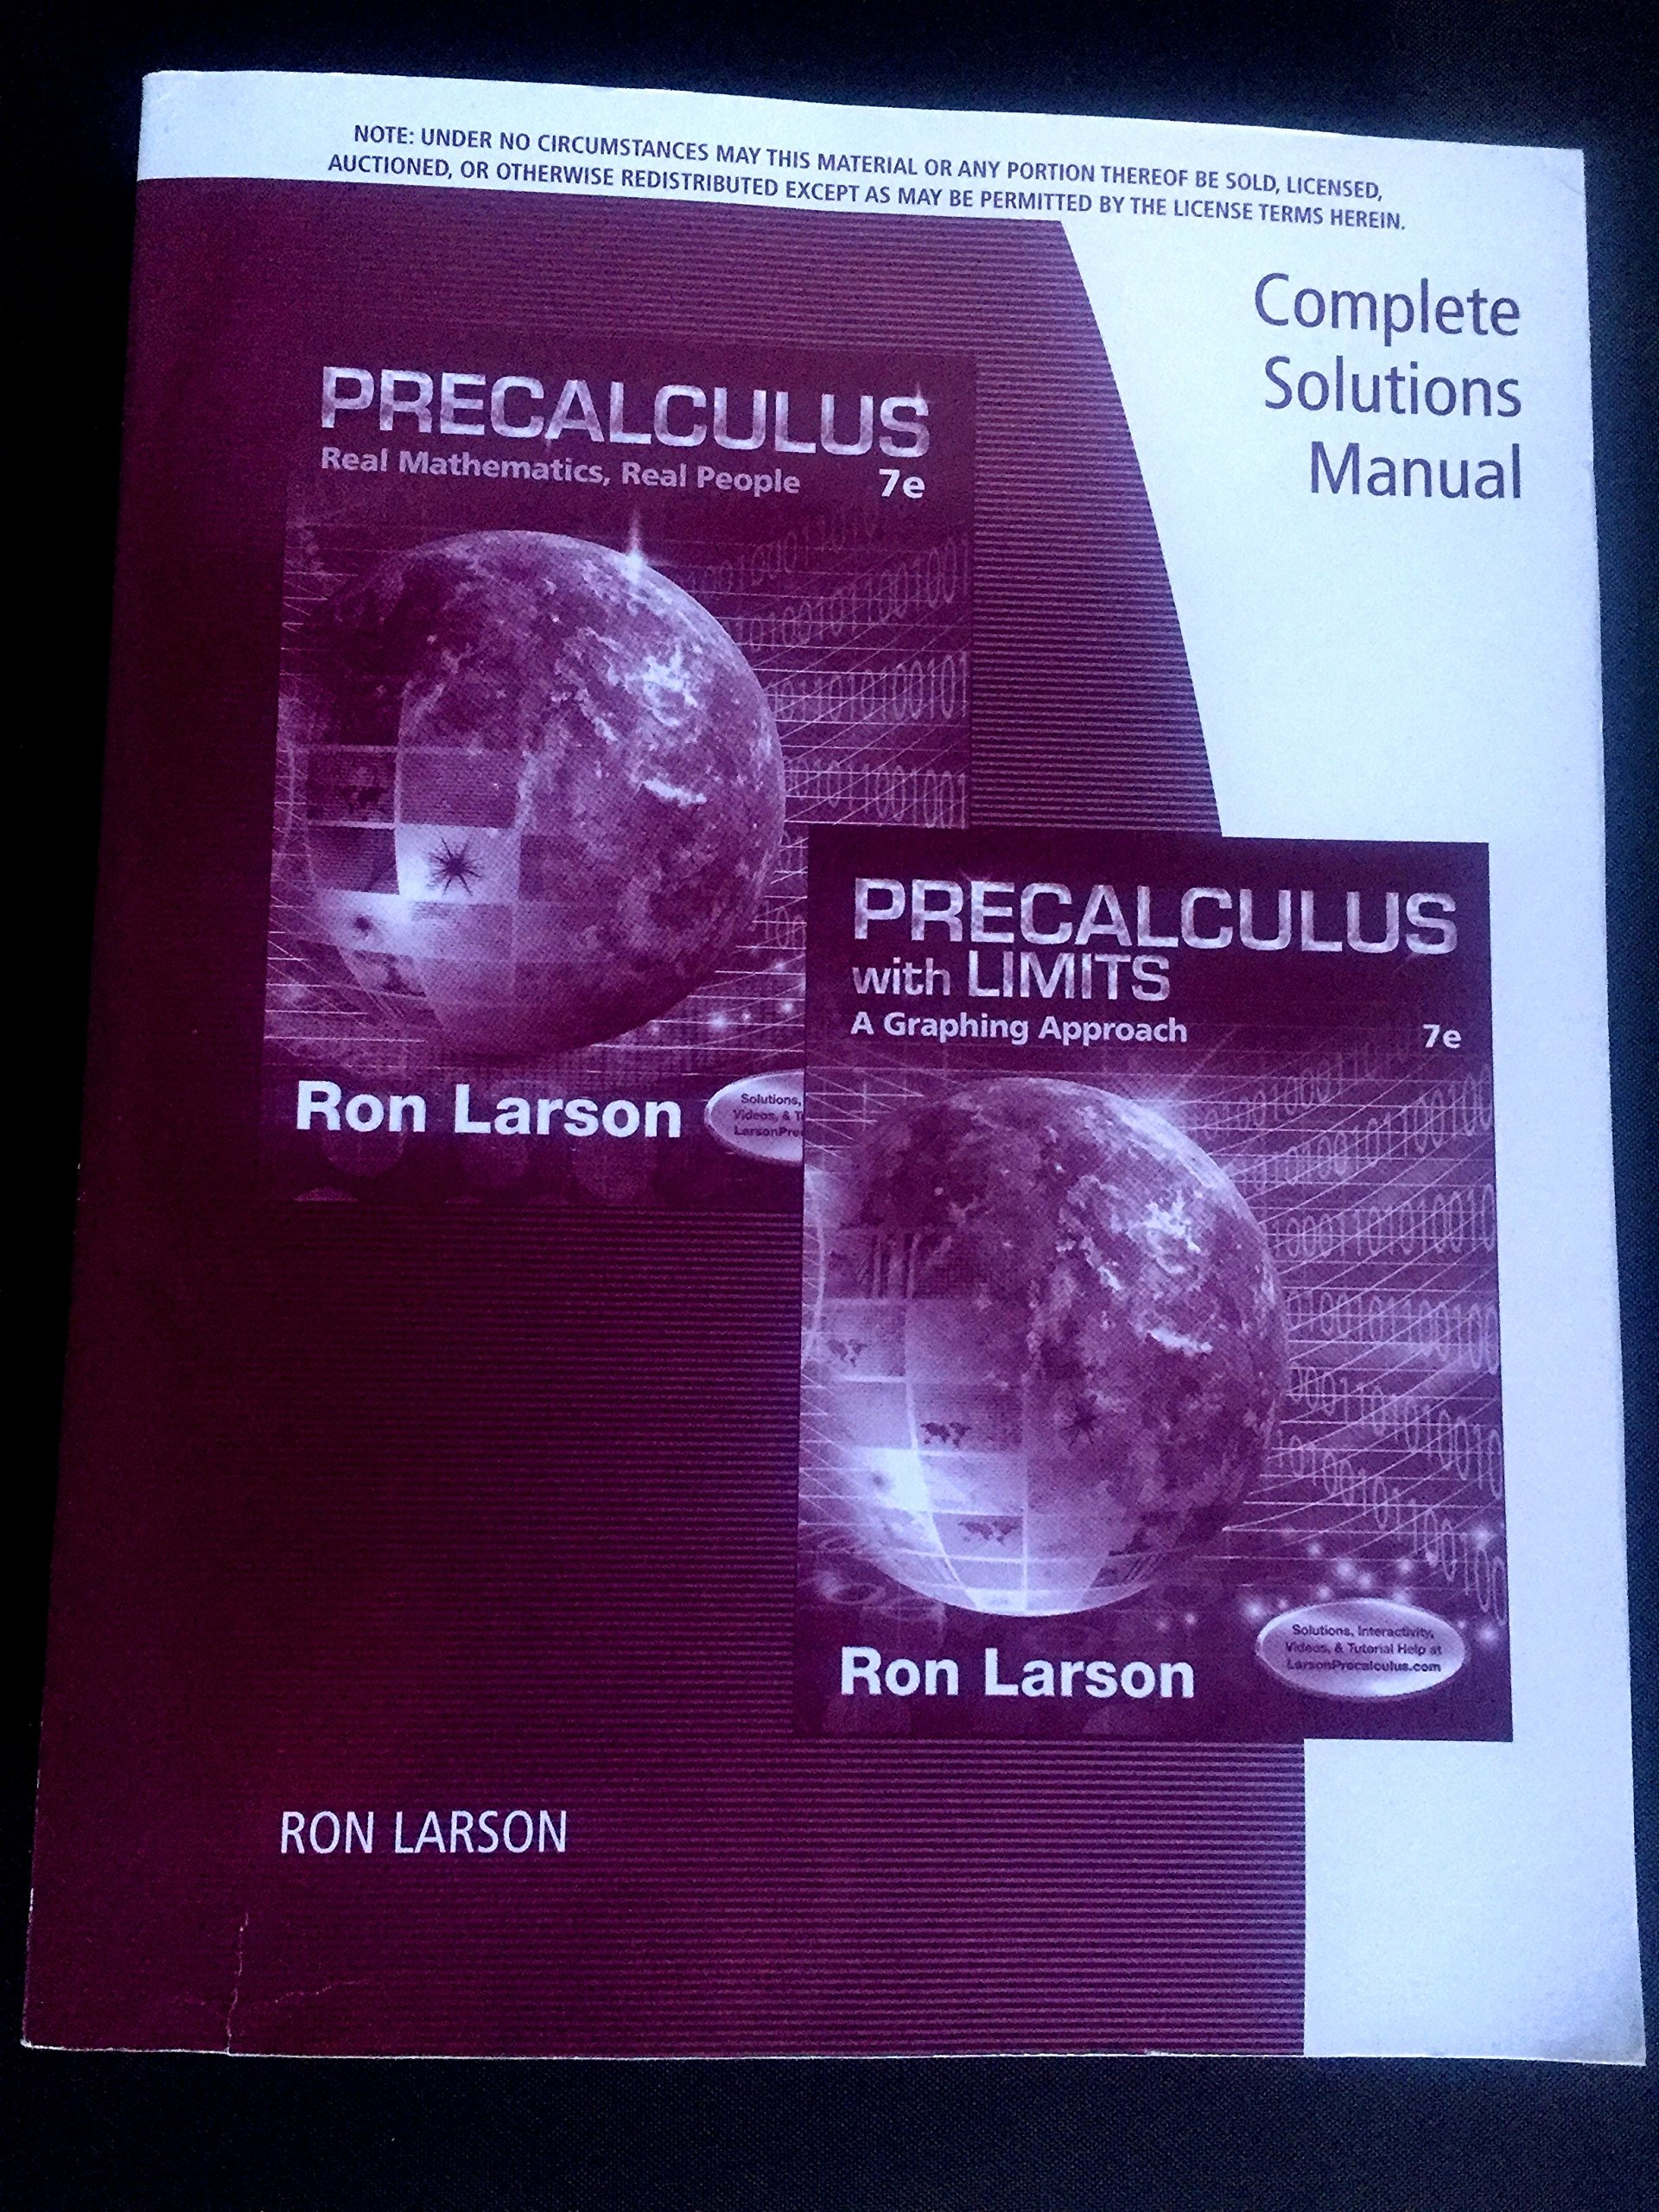 Precalculus With Limits Textbook Ron Larson Pdf